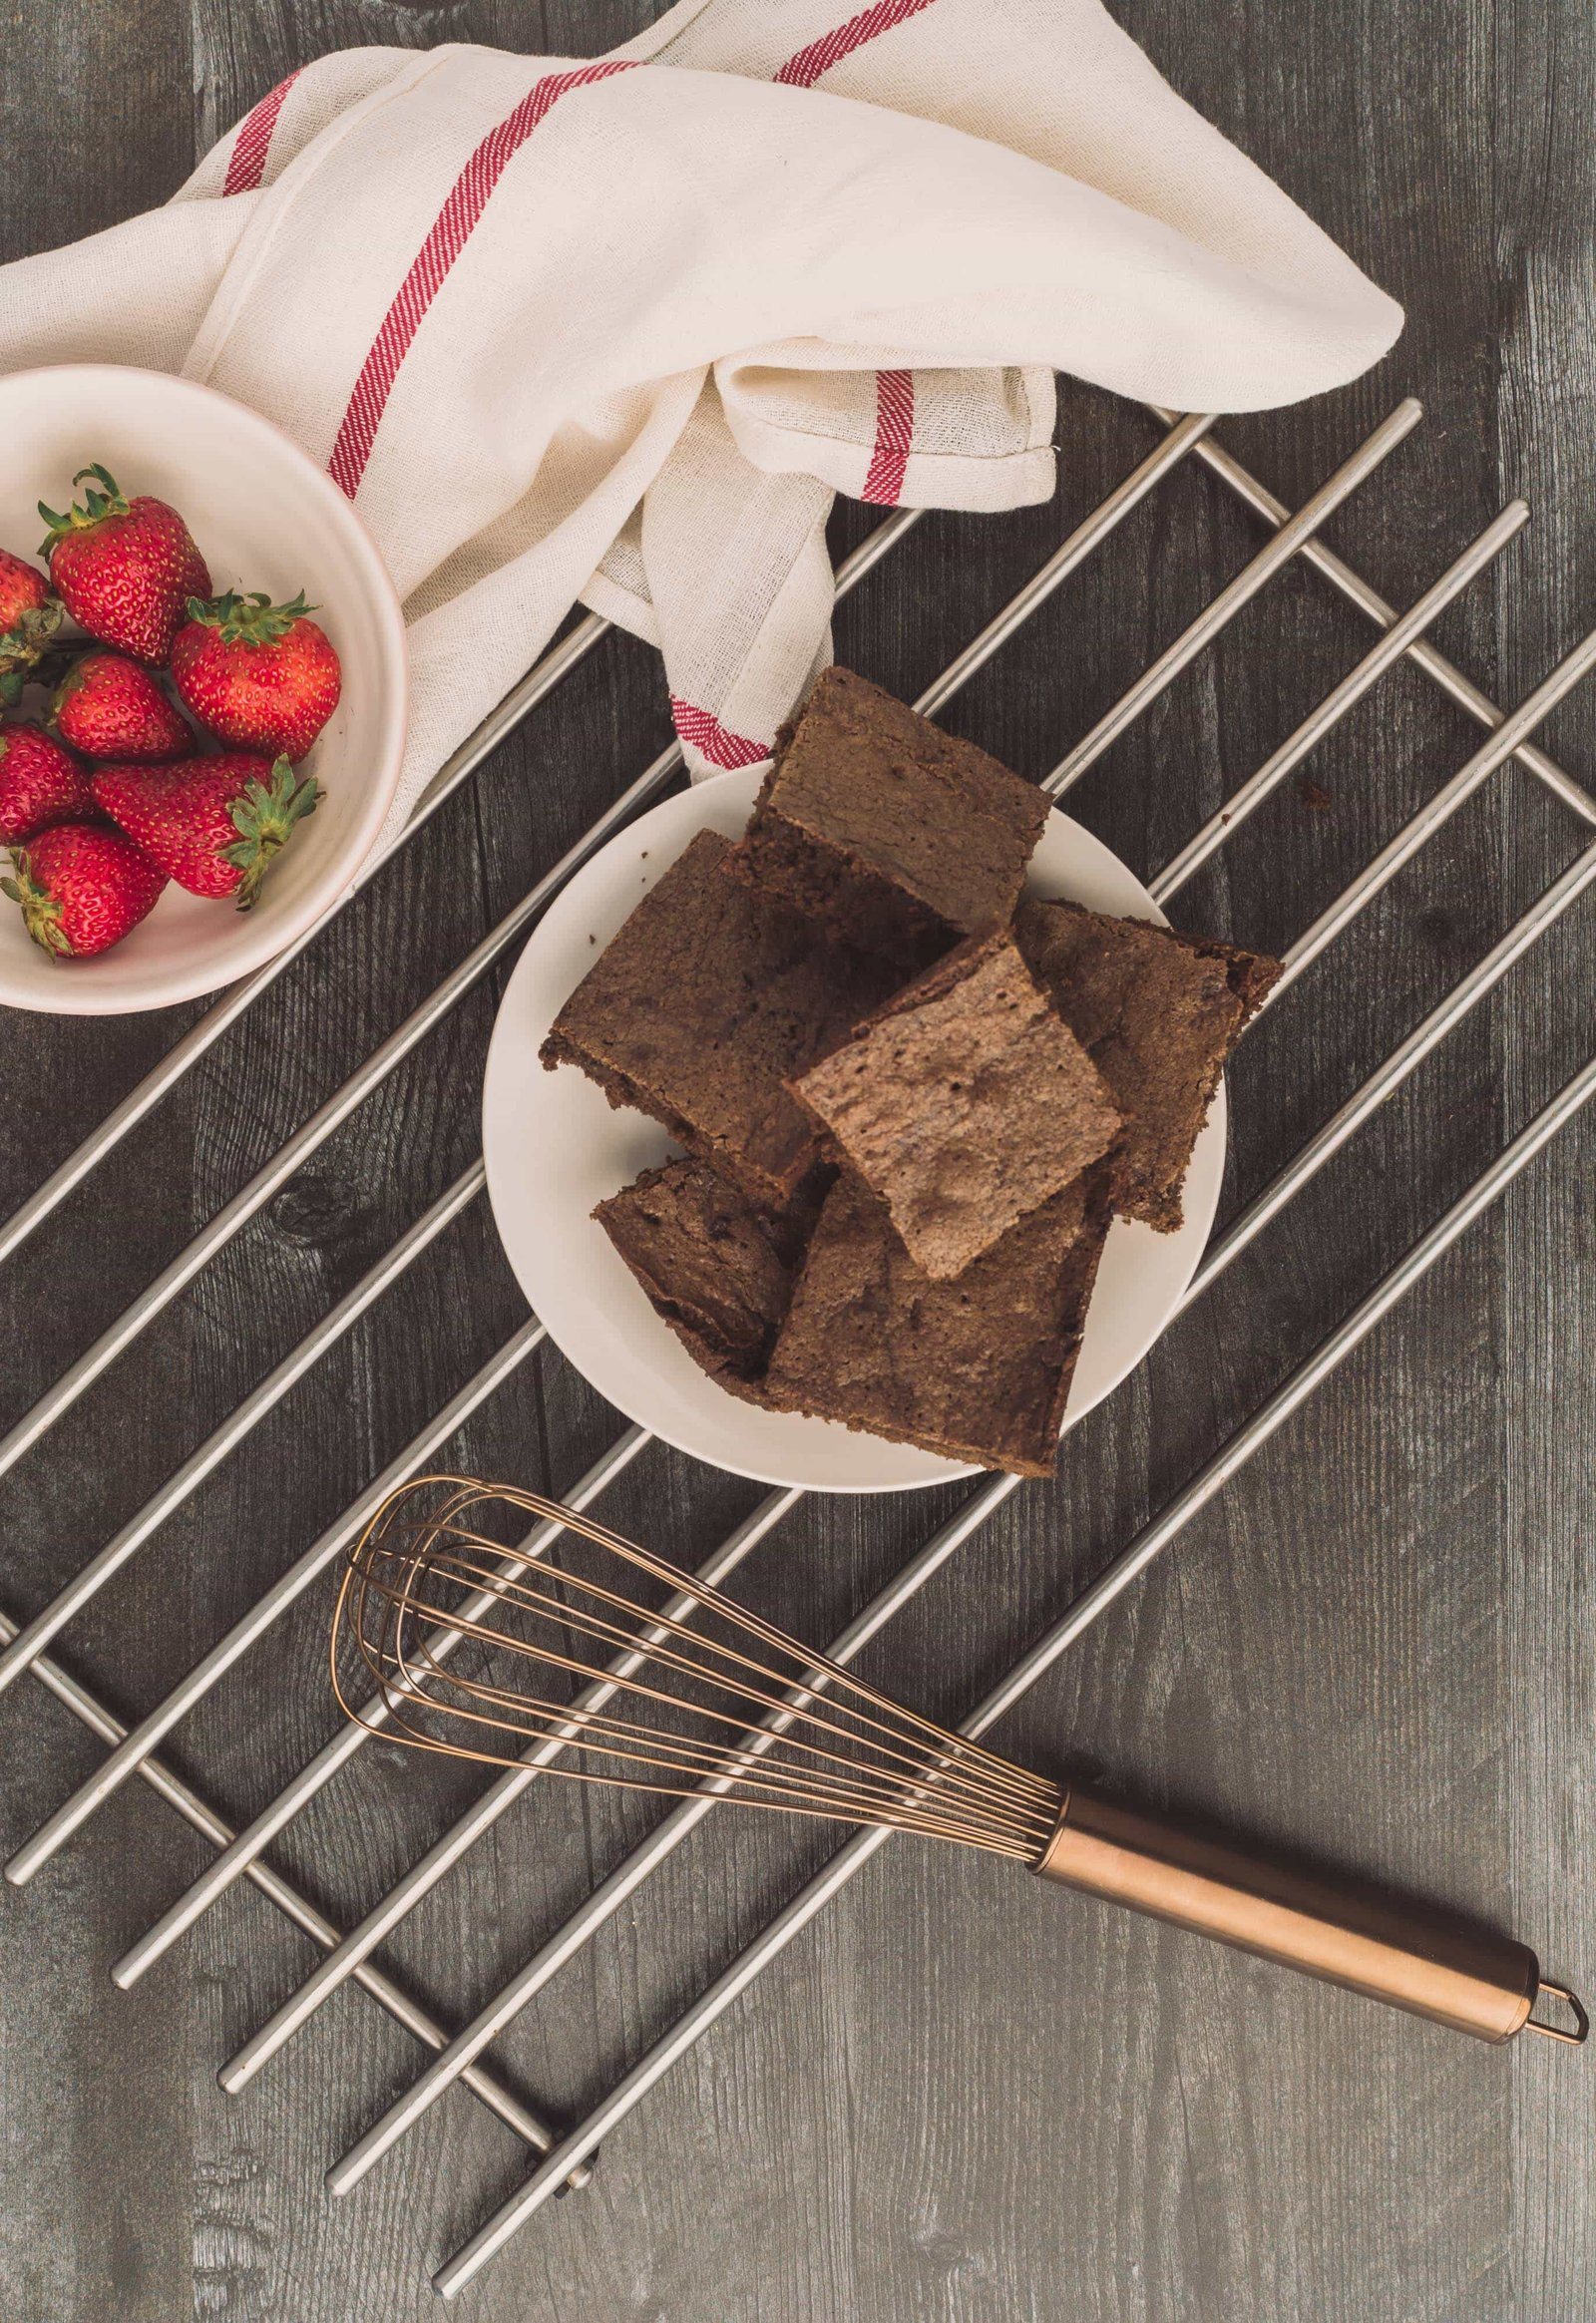 Atelier21 Co - Brownies with Strawberries-010